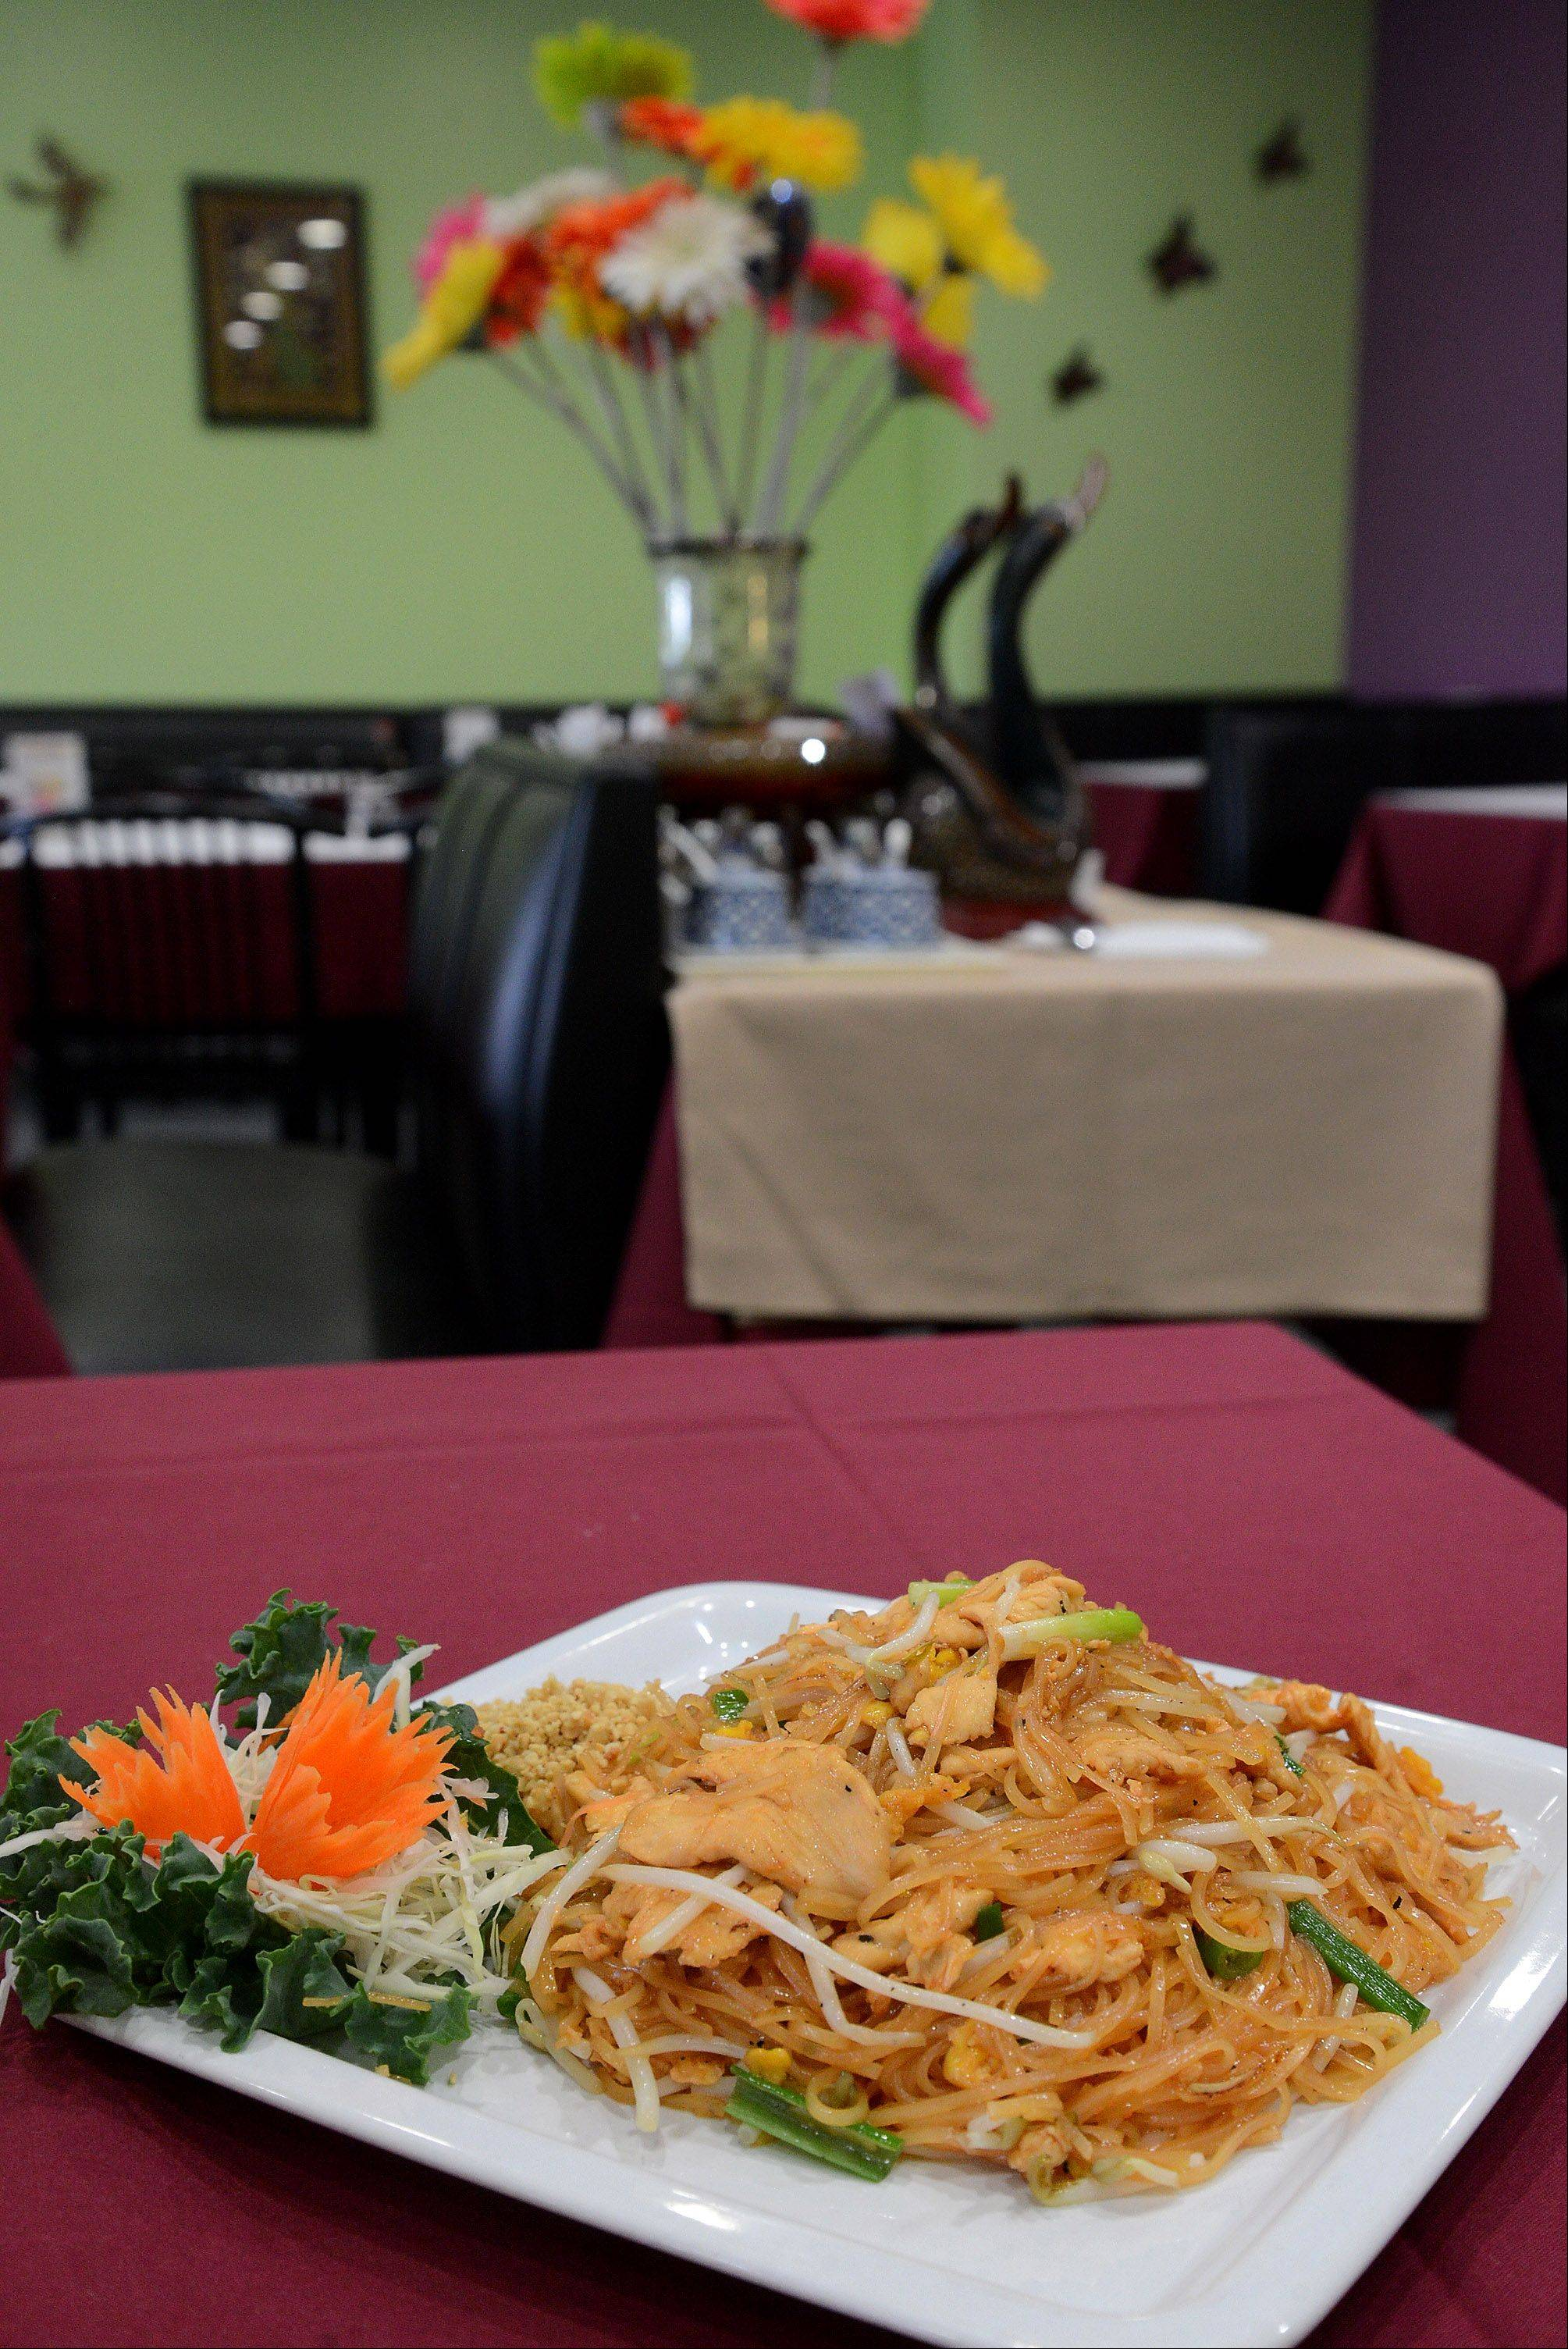 Chicken Pad Thai comes to the table beautifully presented at Lovely Thai in Grayslake.